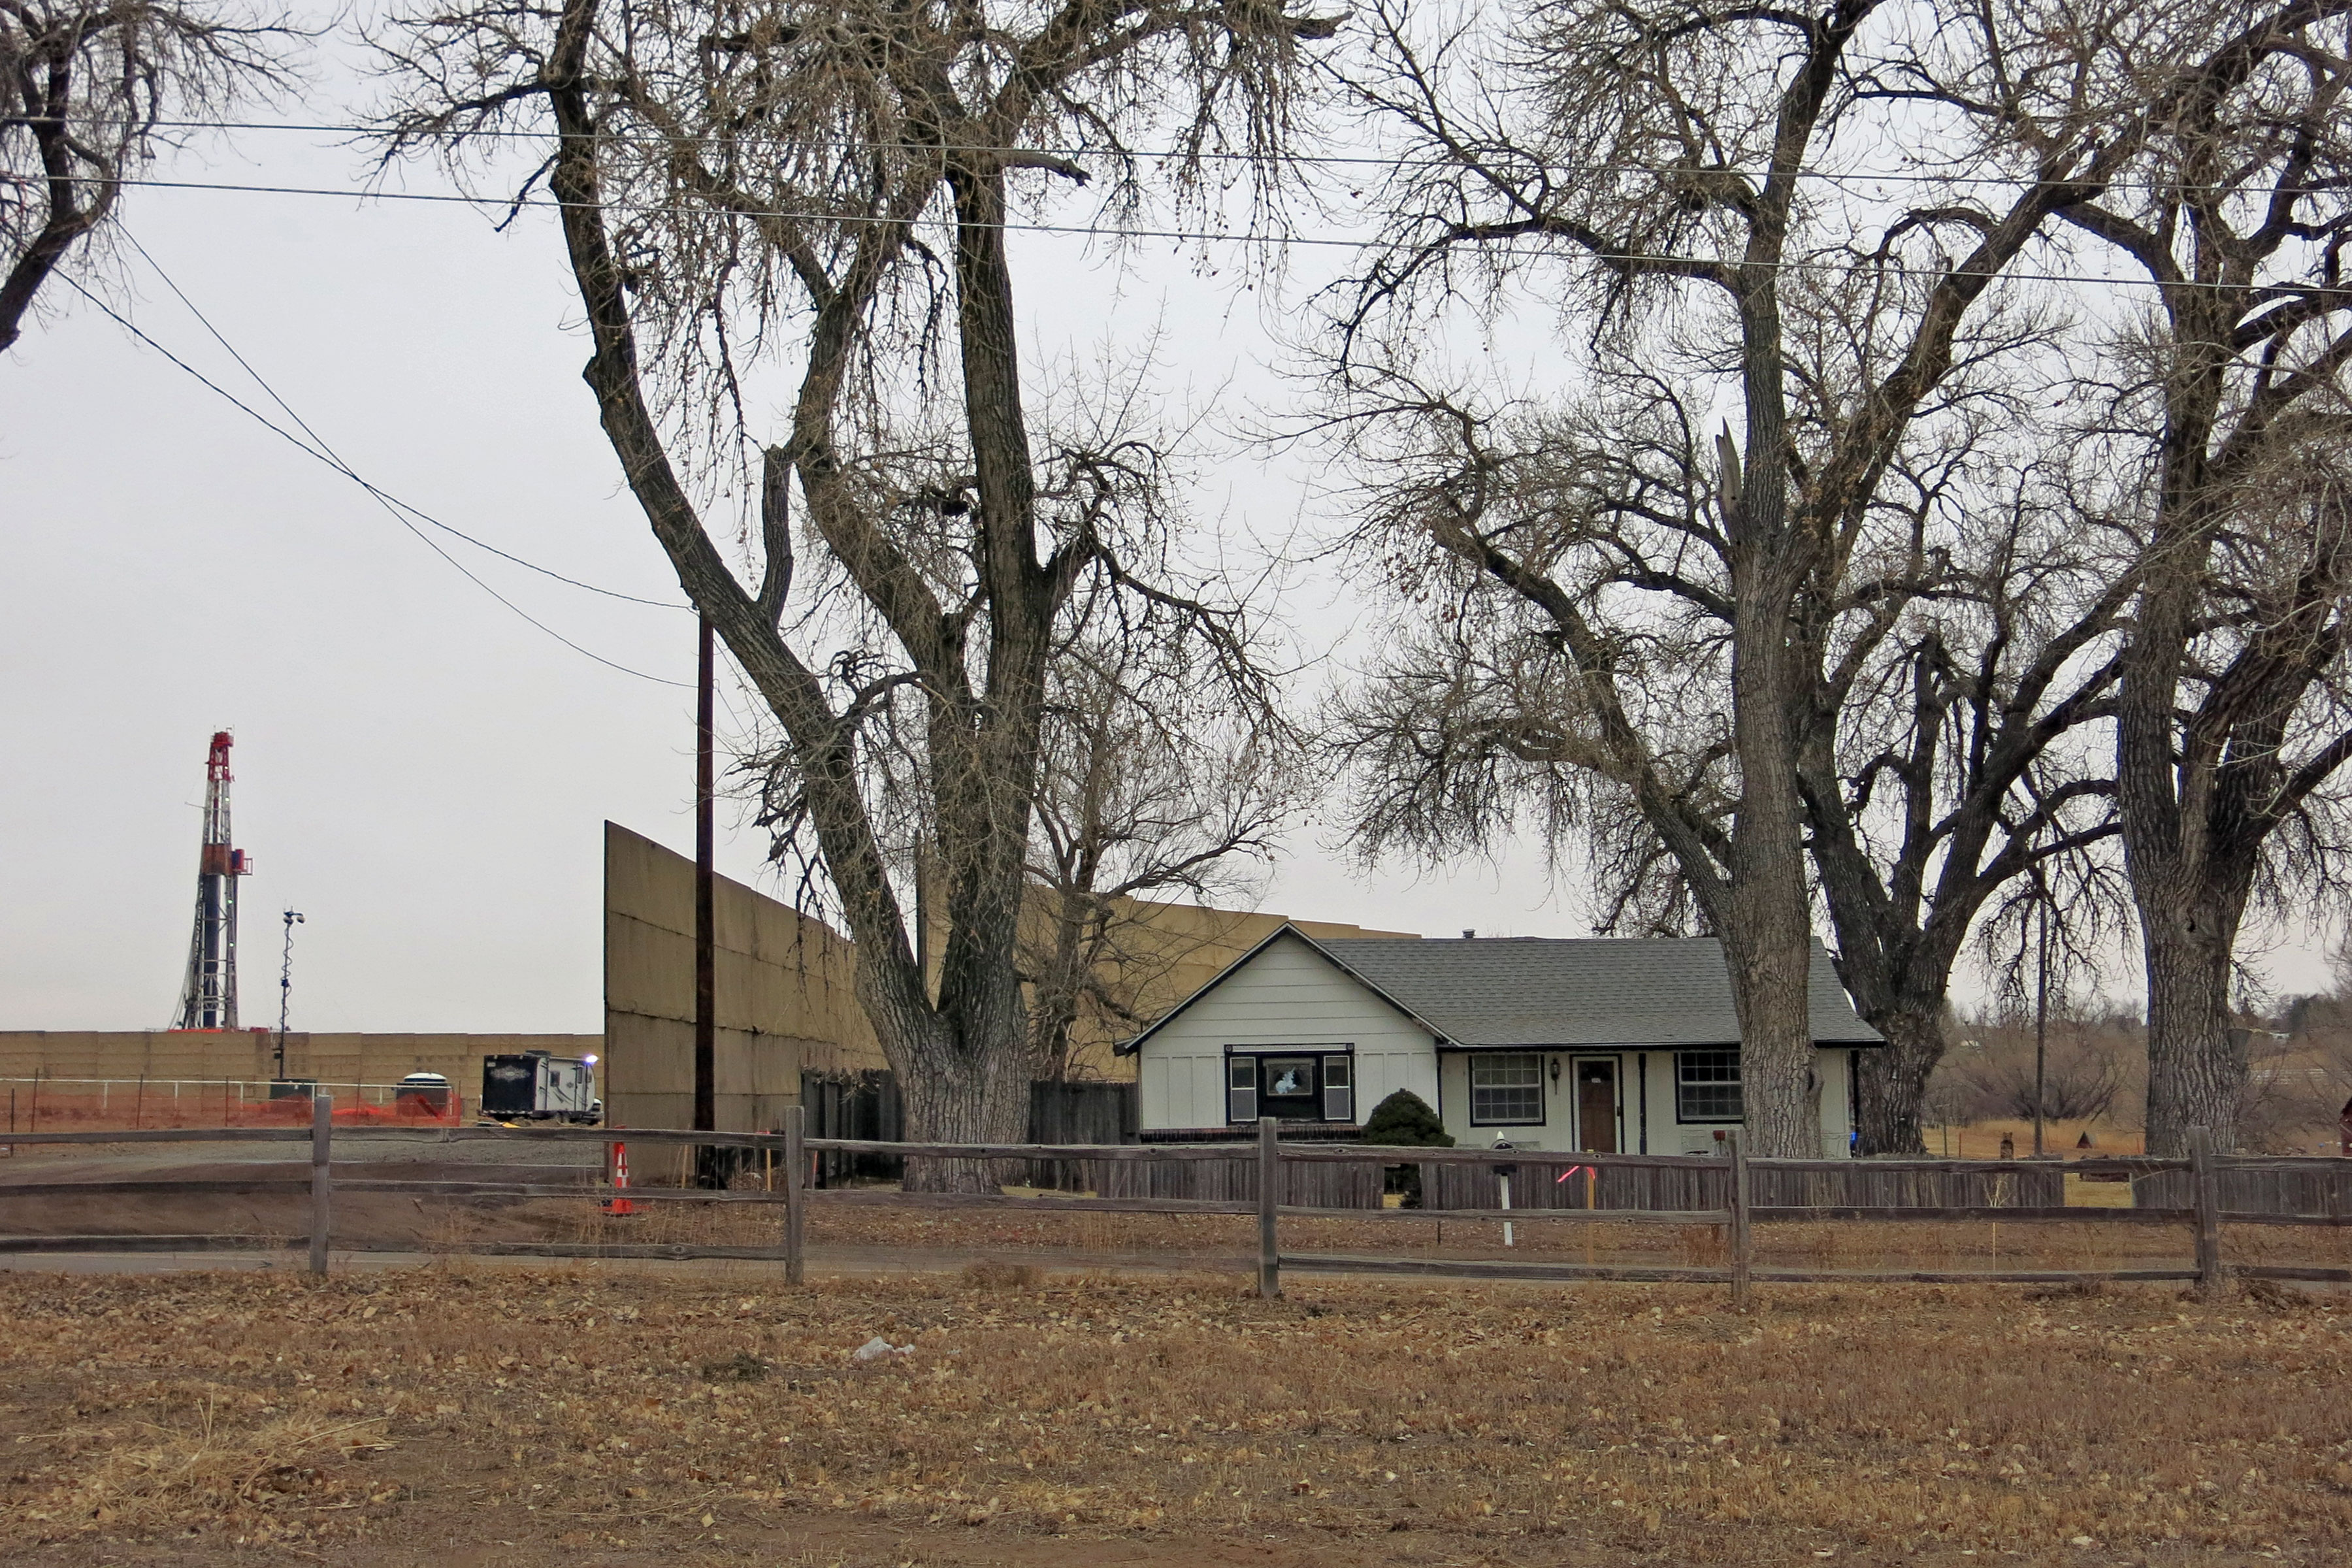 <p>Dawn Stein's home near the Triple Creek drilling site in Greeley, Colo. The access road for the site is directly to the left of her home and the sound wall installed to mitigate impacts.</p>